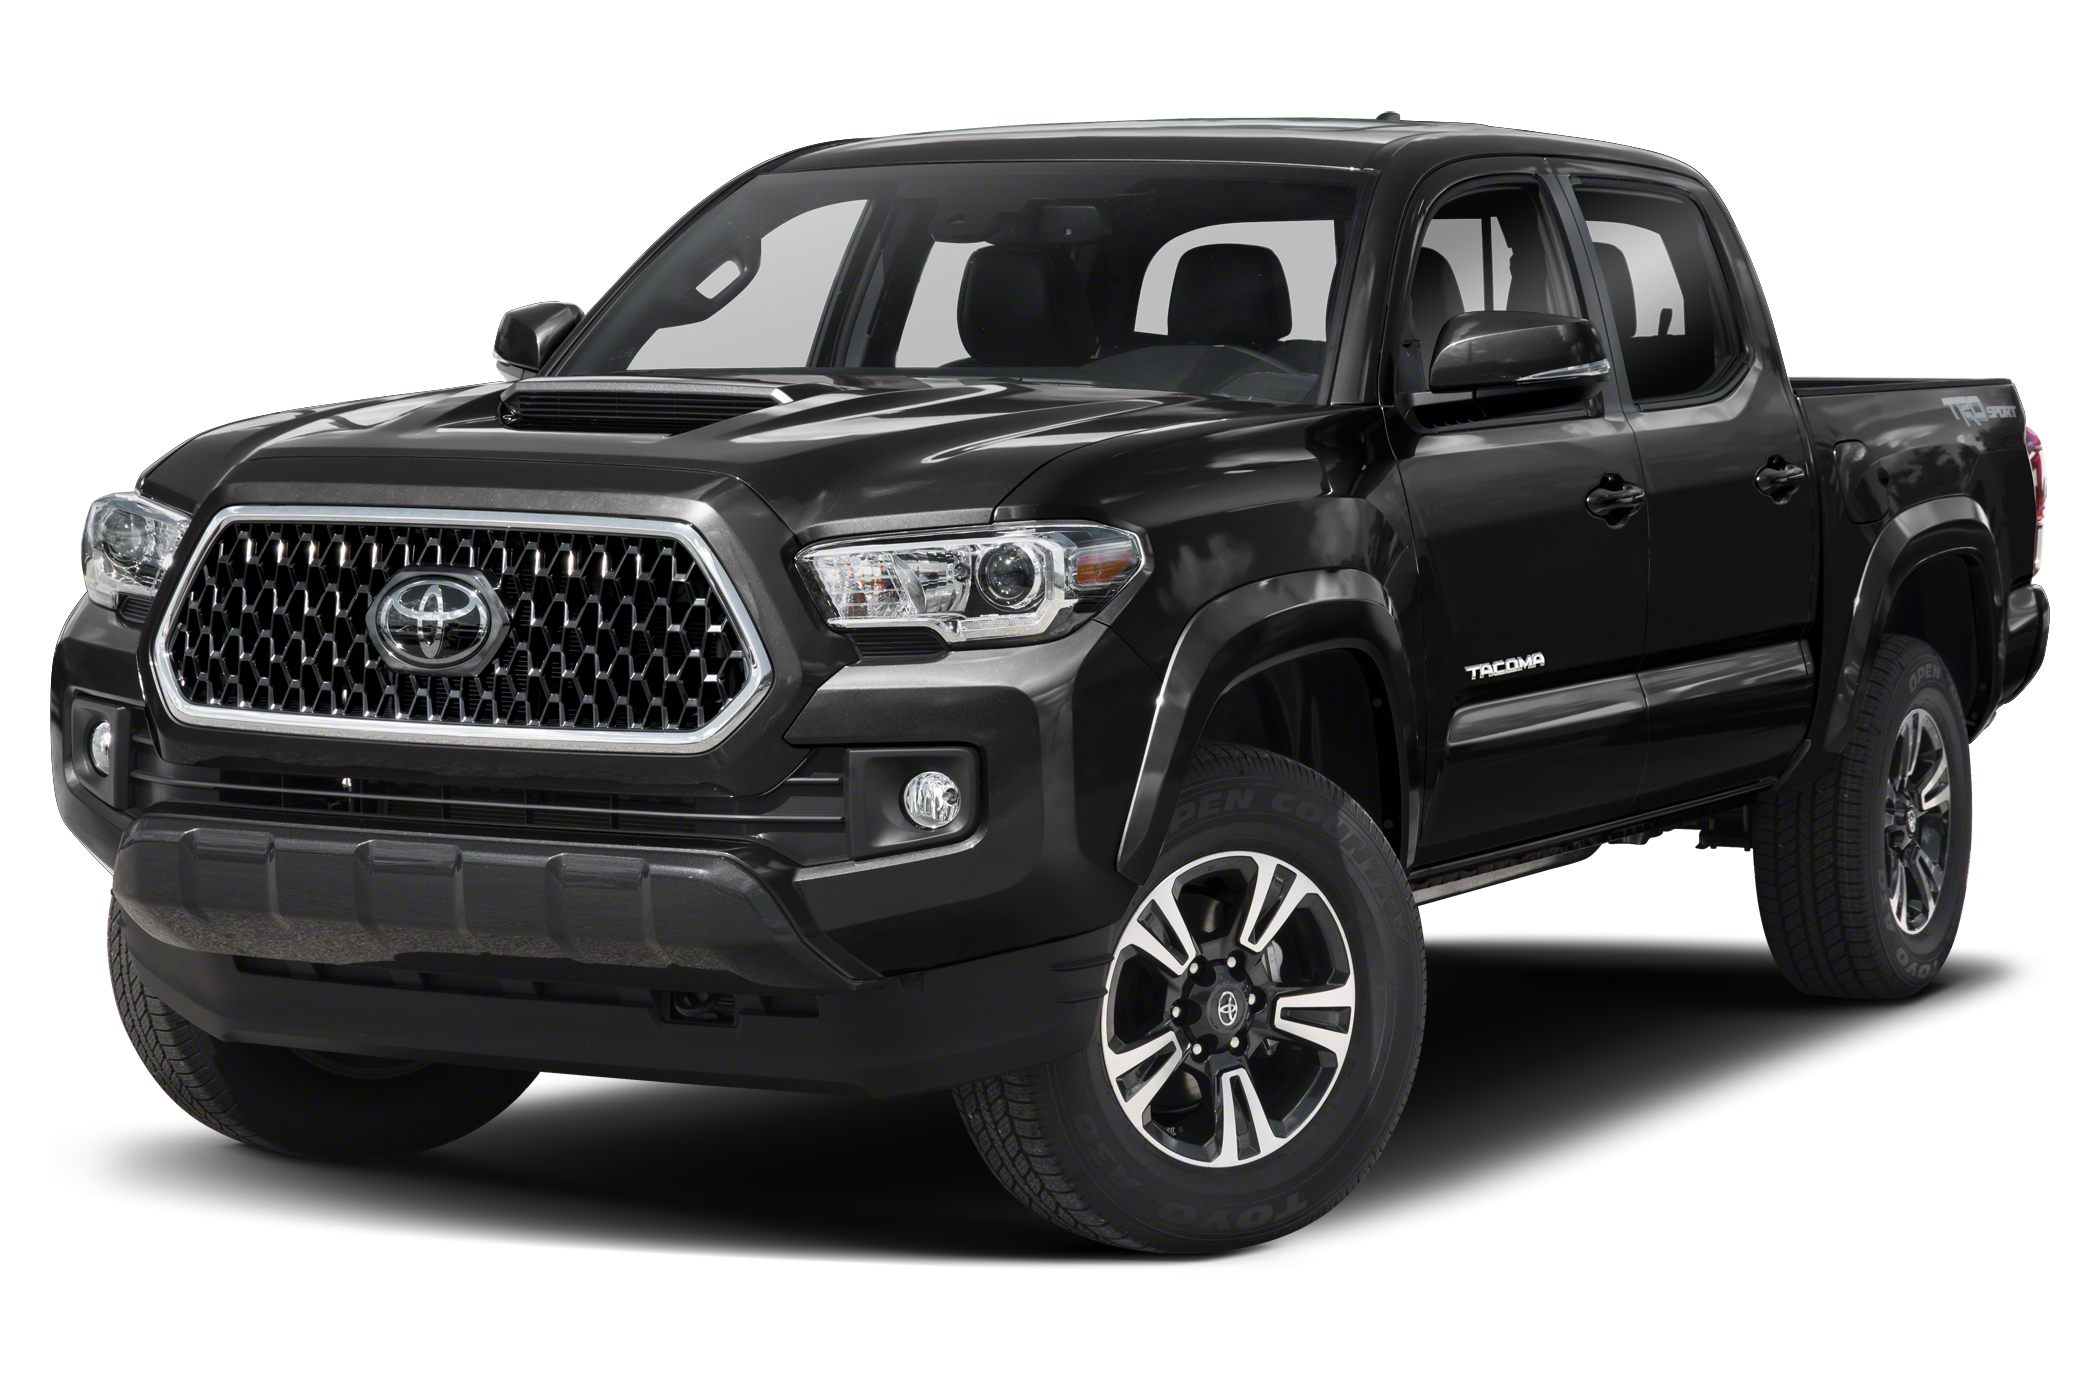 2019 Toyota Tacoma TRD Sport V6 4x4 Double Cab 140.6 in. WB